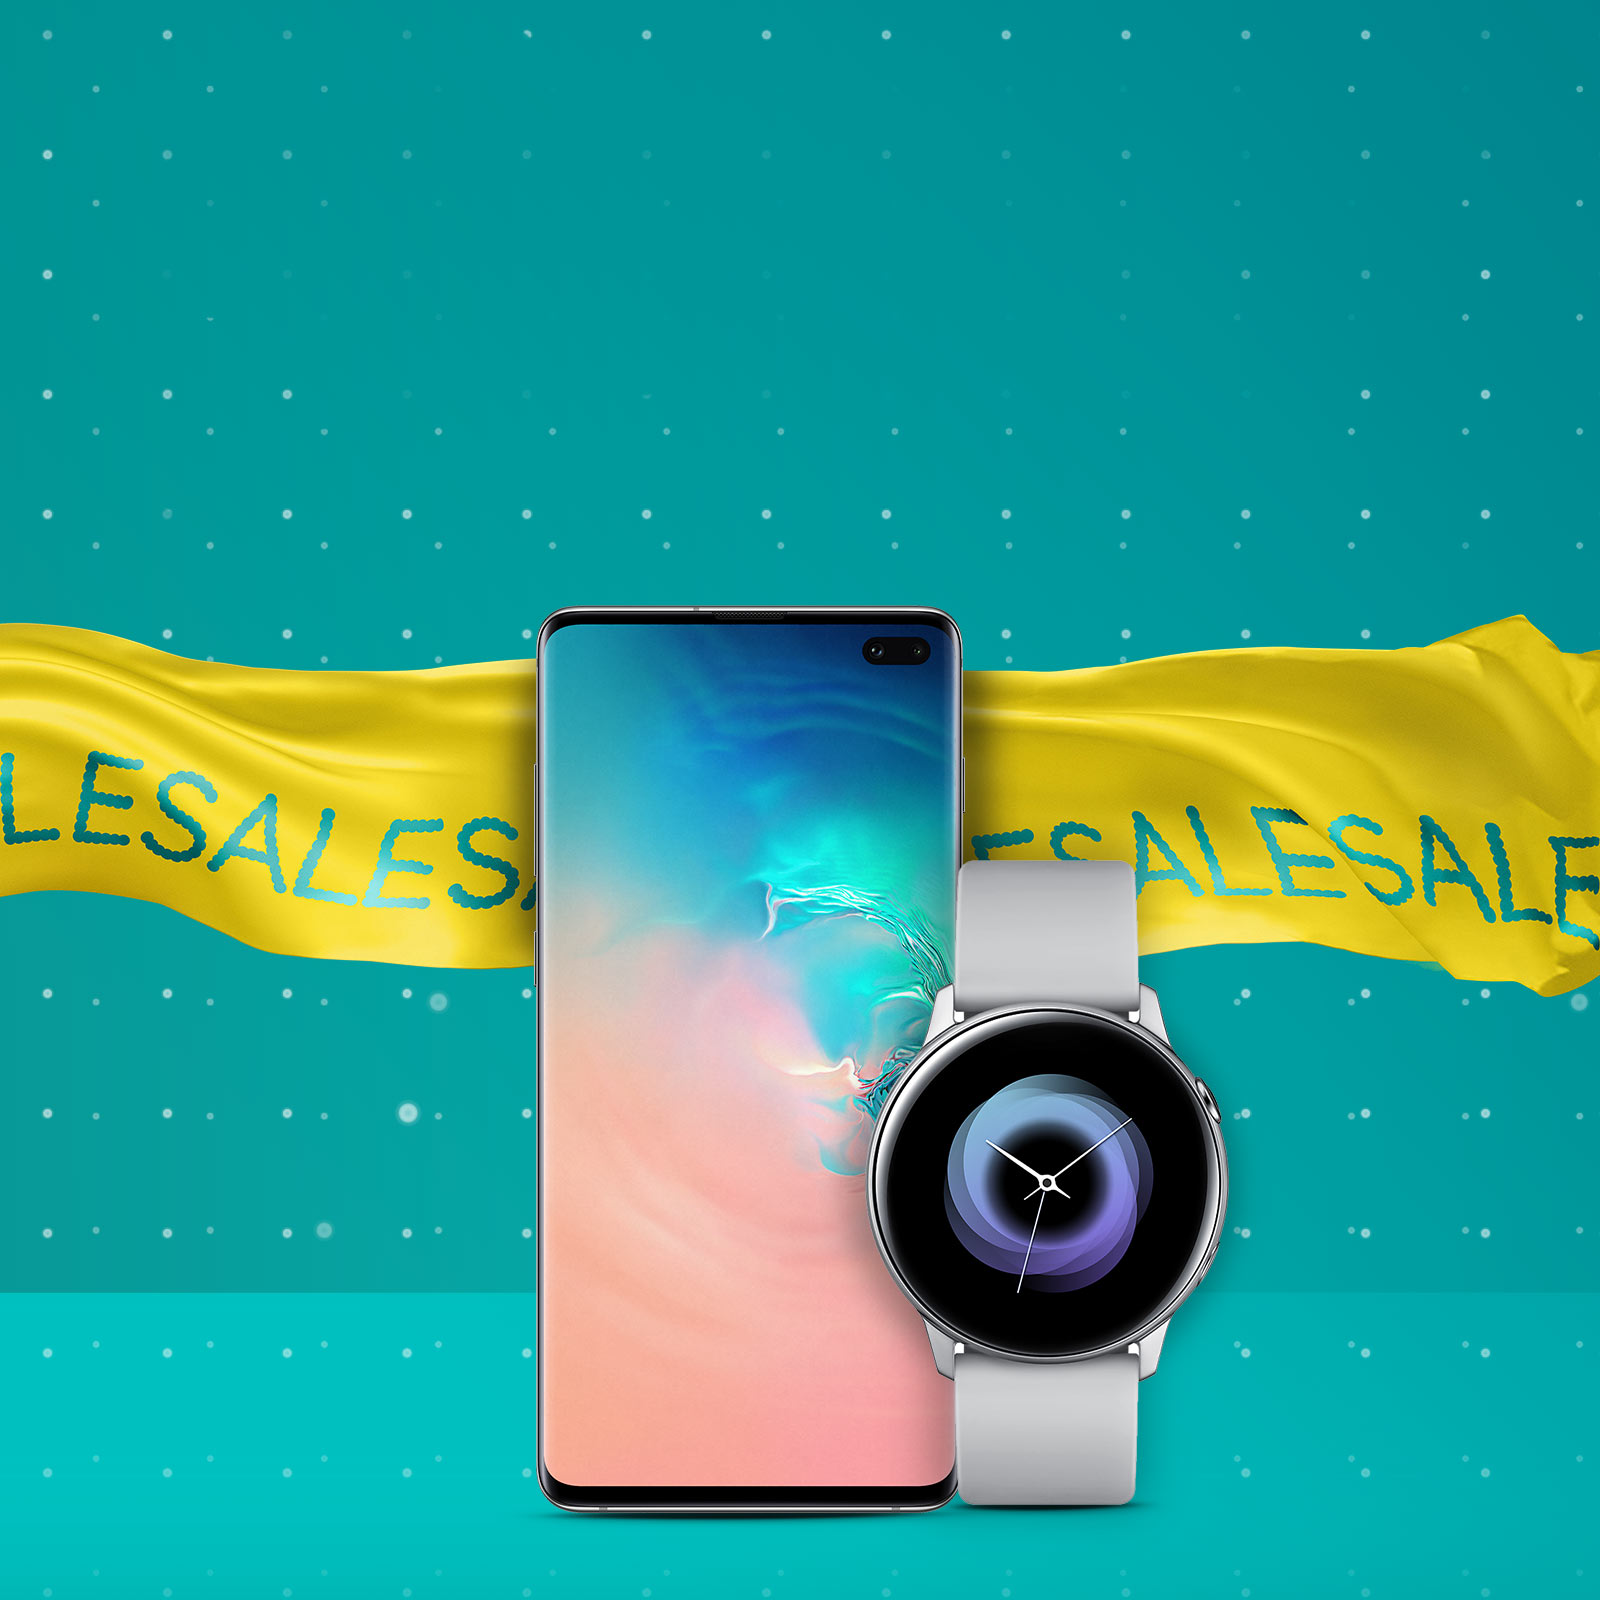 Samsung GS10+ with Galaxy Watch Active and sales banner in background